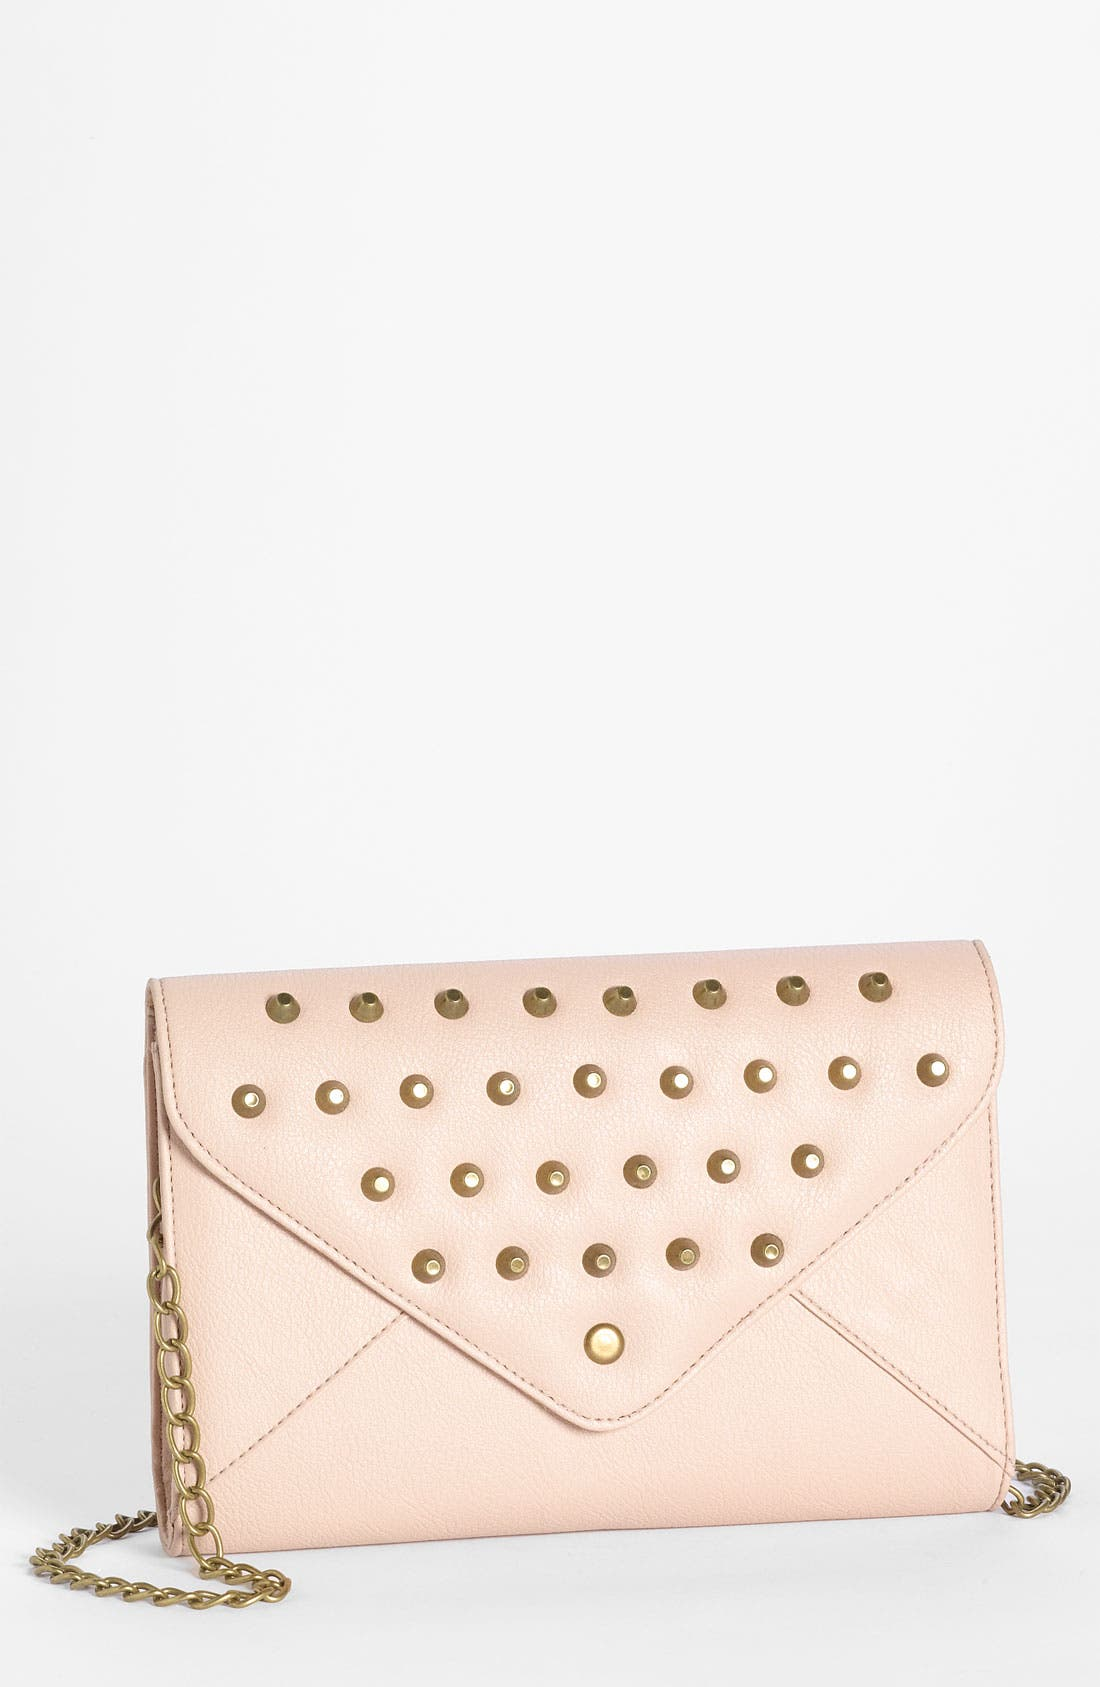 Alternate Image 1 Selected - OMG Studded Crossbody Clutch